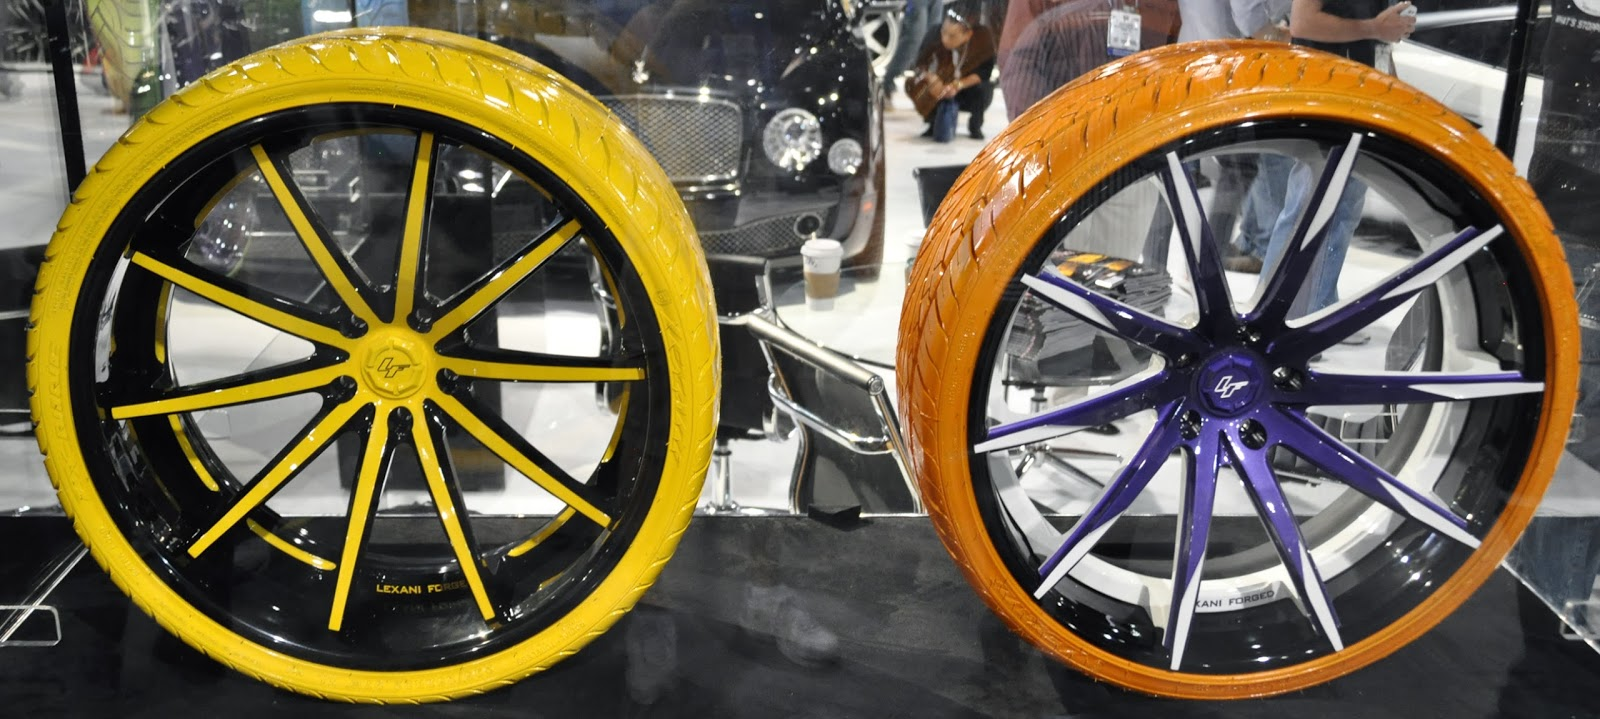 Oddball Colored Tires And Rims